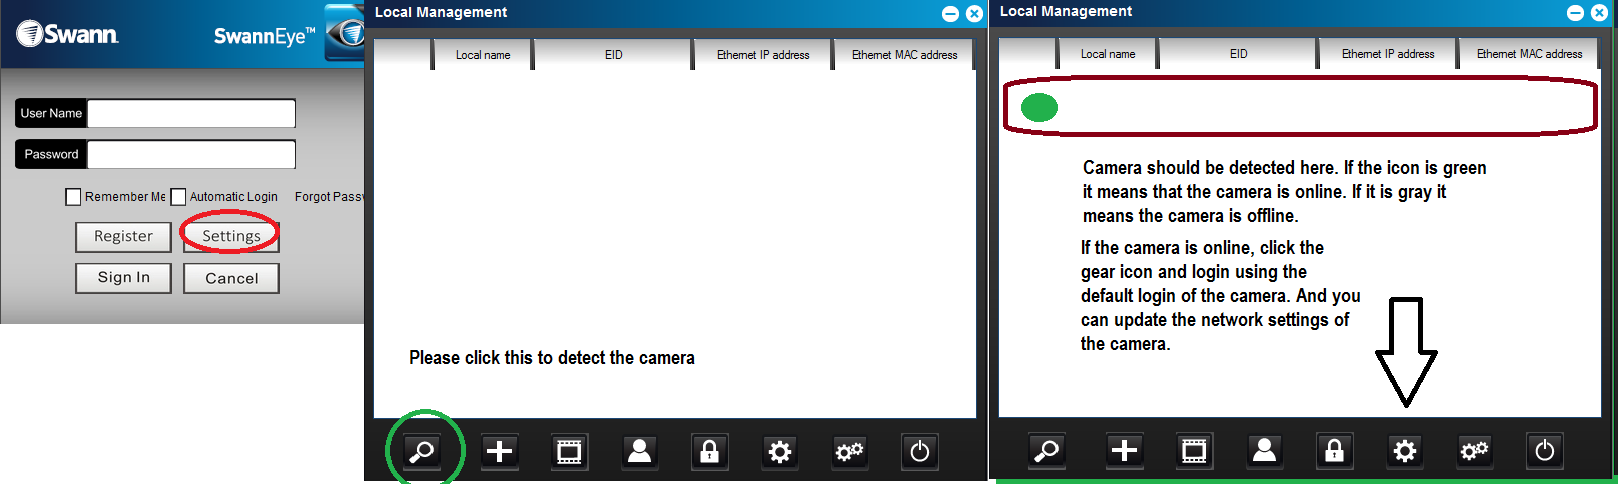 Camera keep saying offline | Swann Support Community